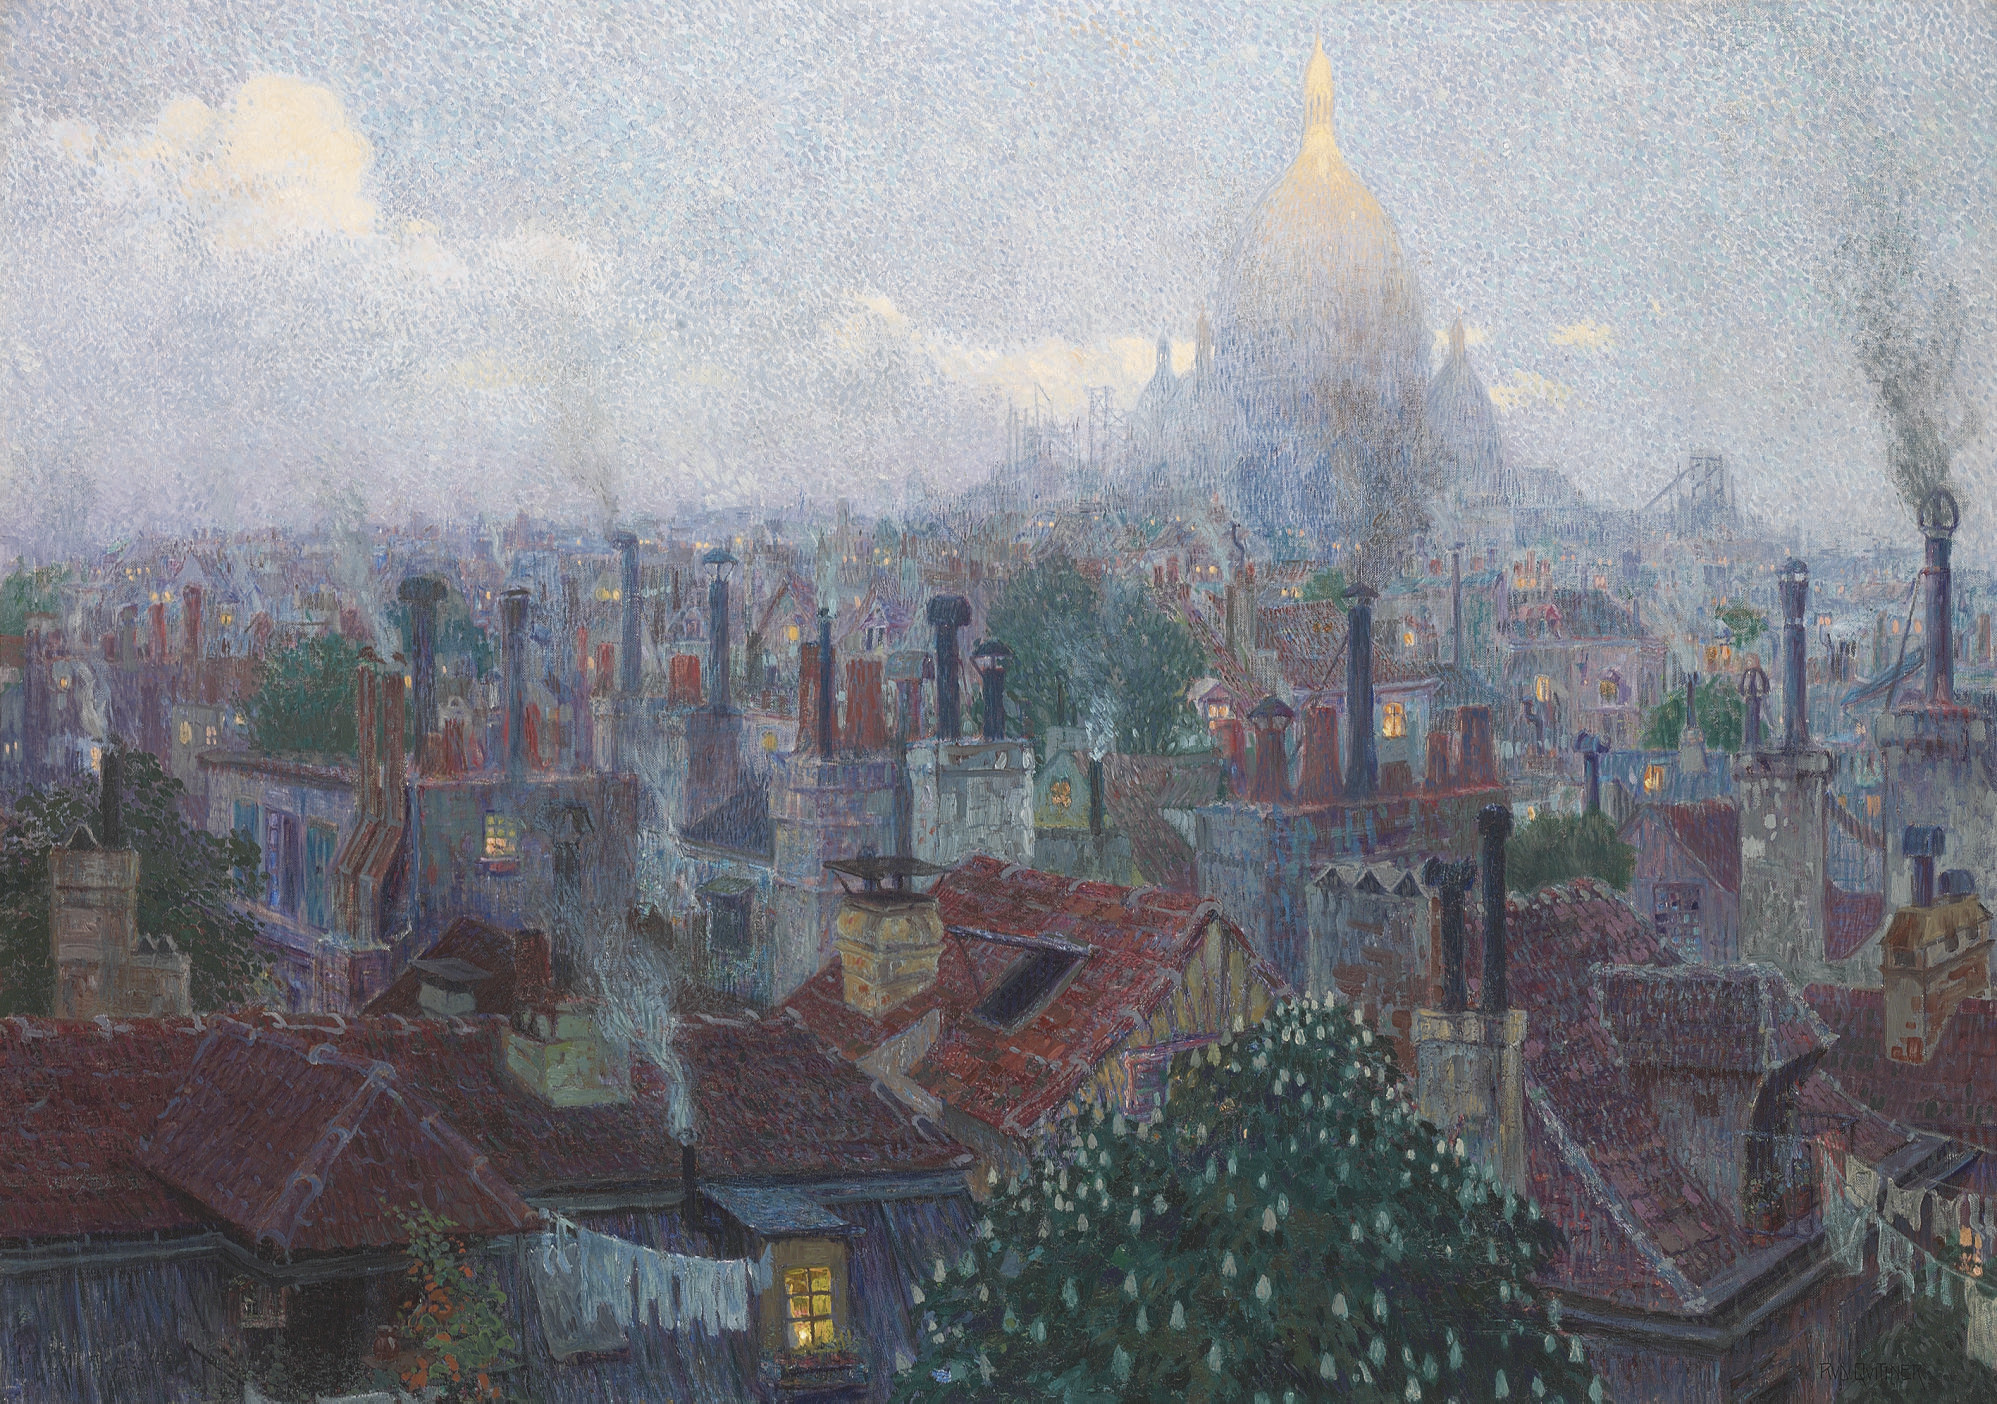 View of the Sacre Coeur from Montmartre, Paris